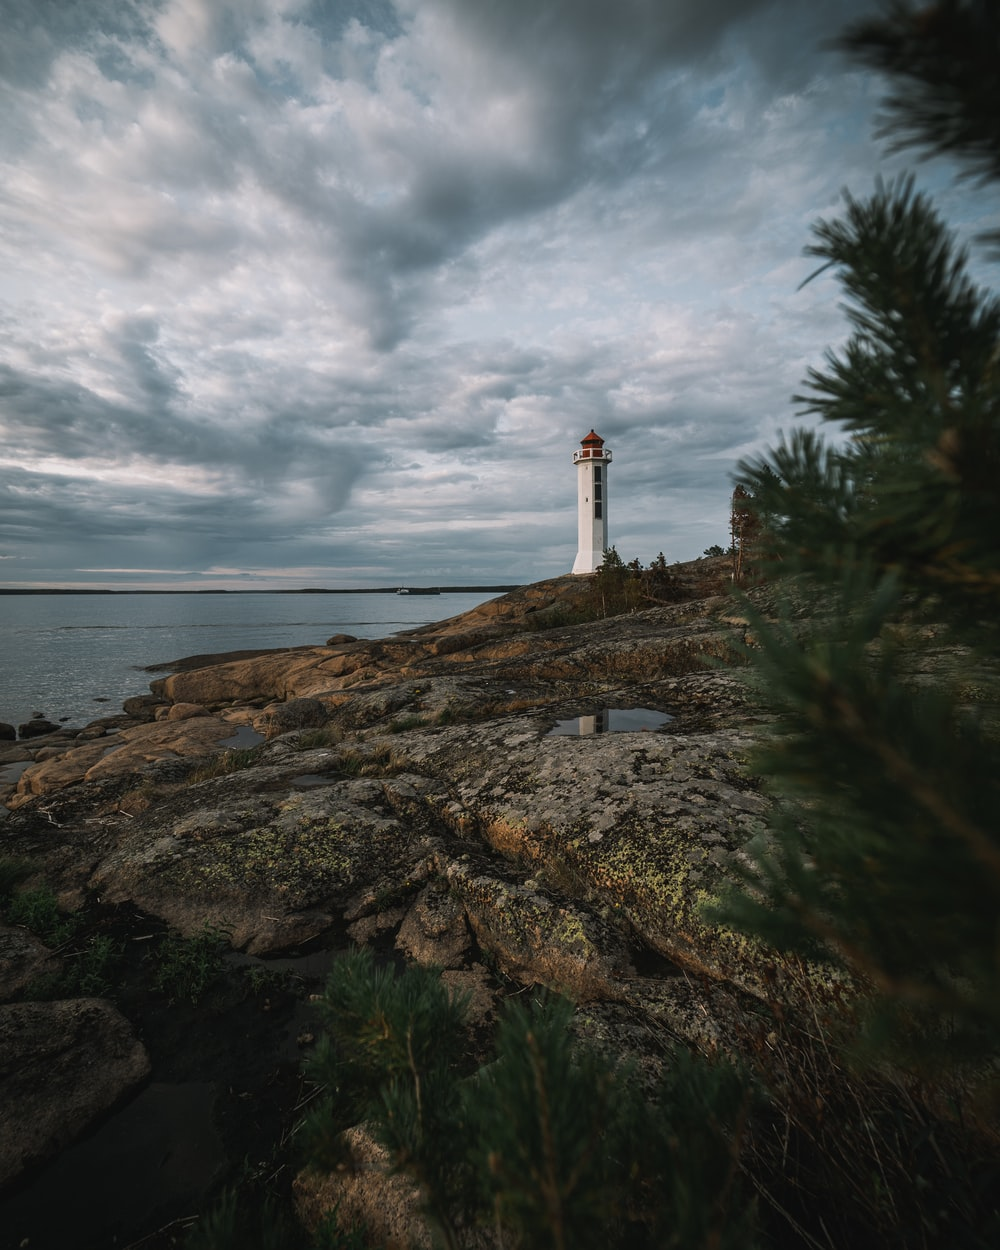 white and brown lighthouse on brown rock formation near body of water under white clouds during